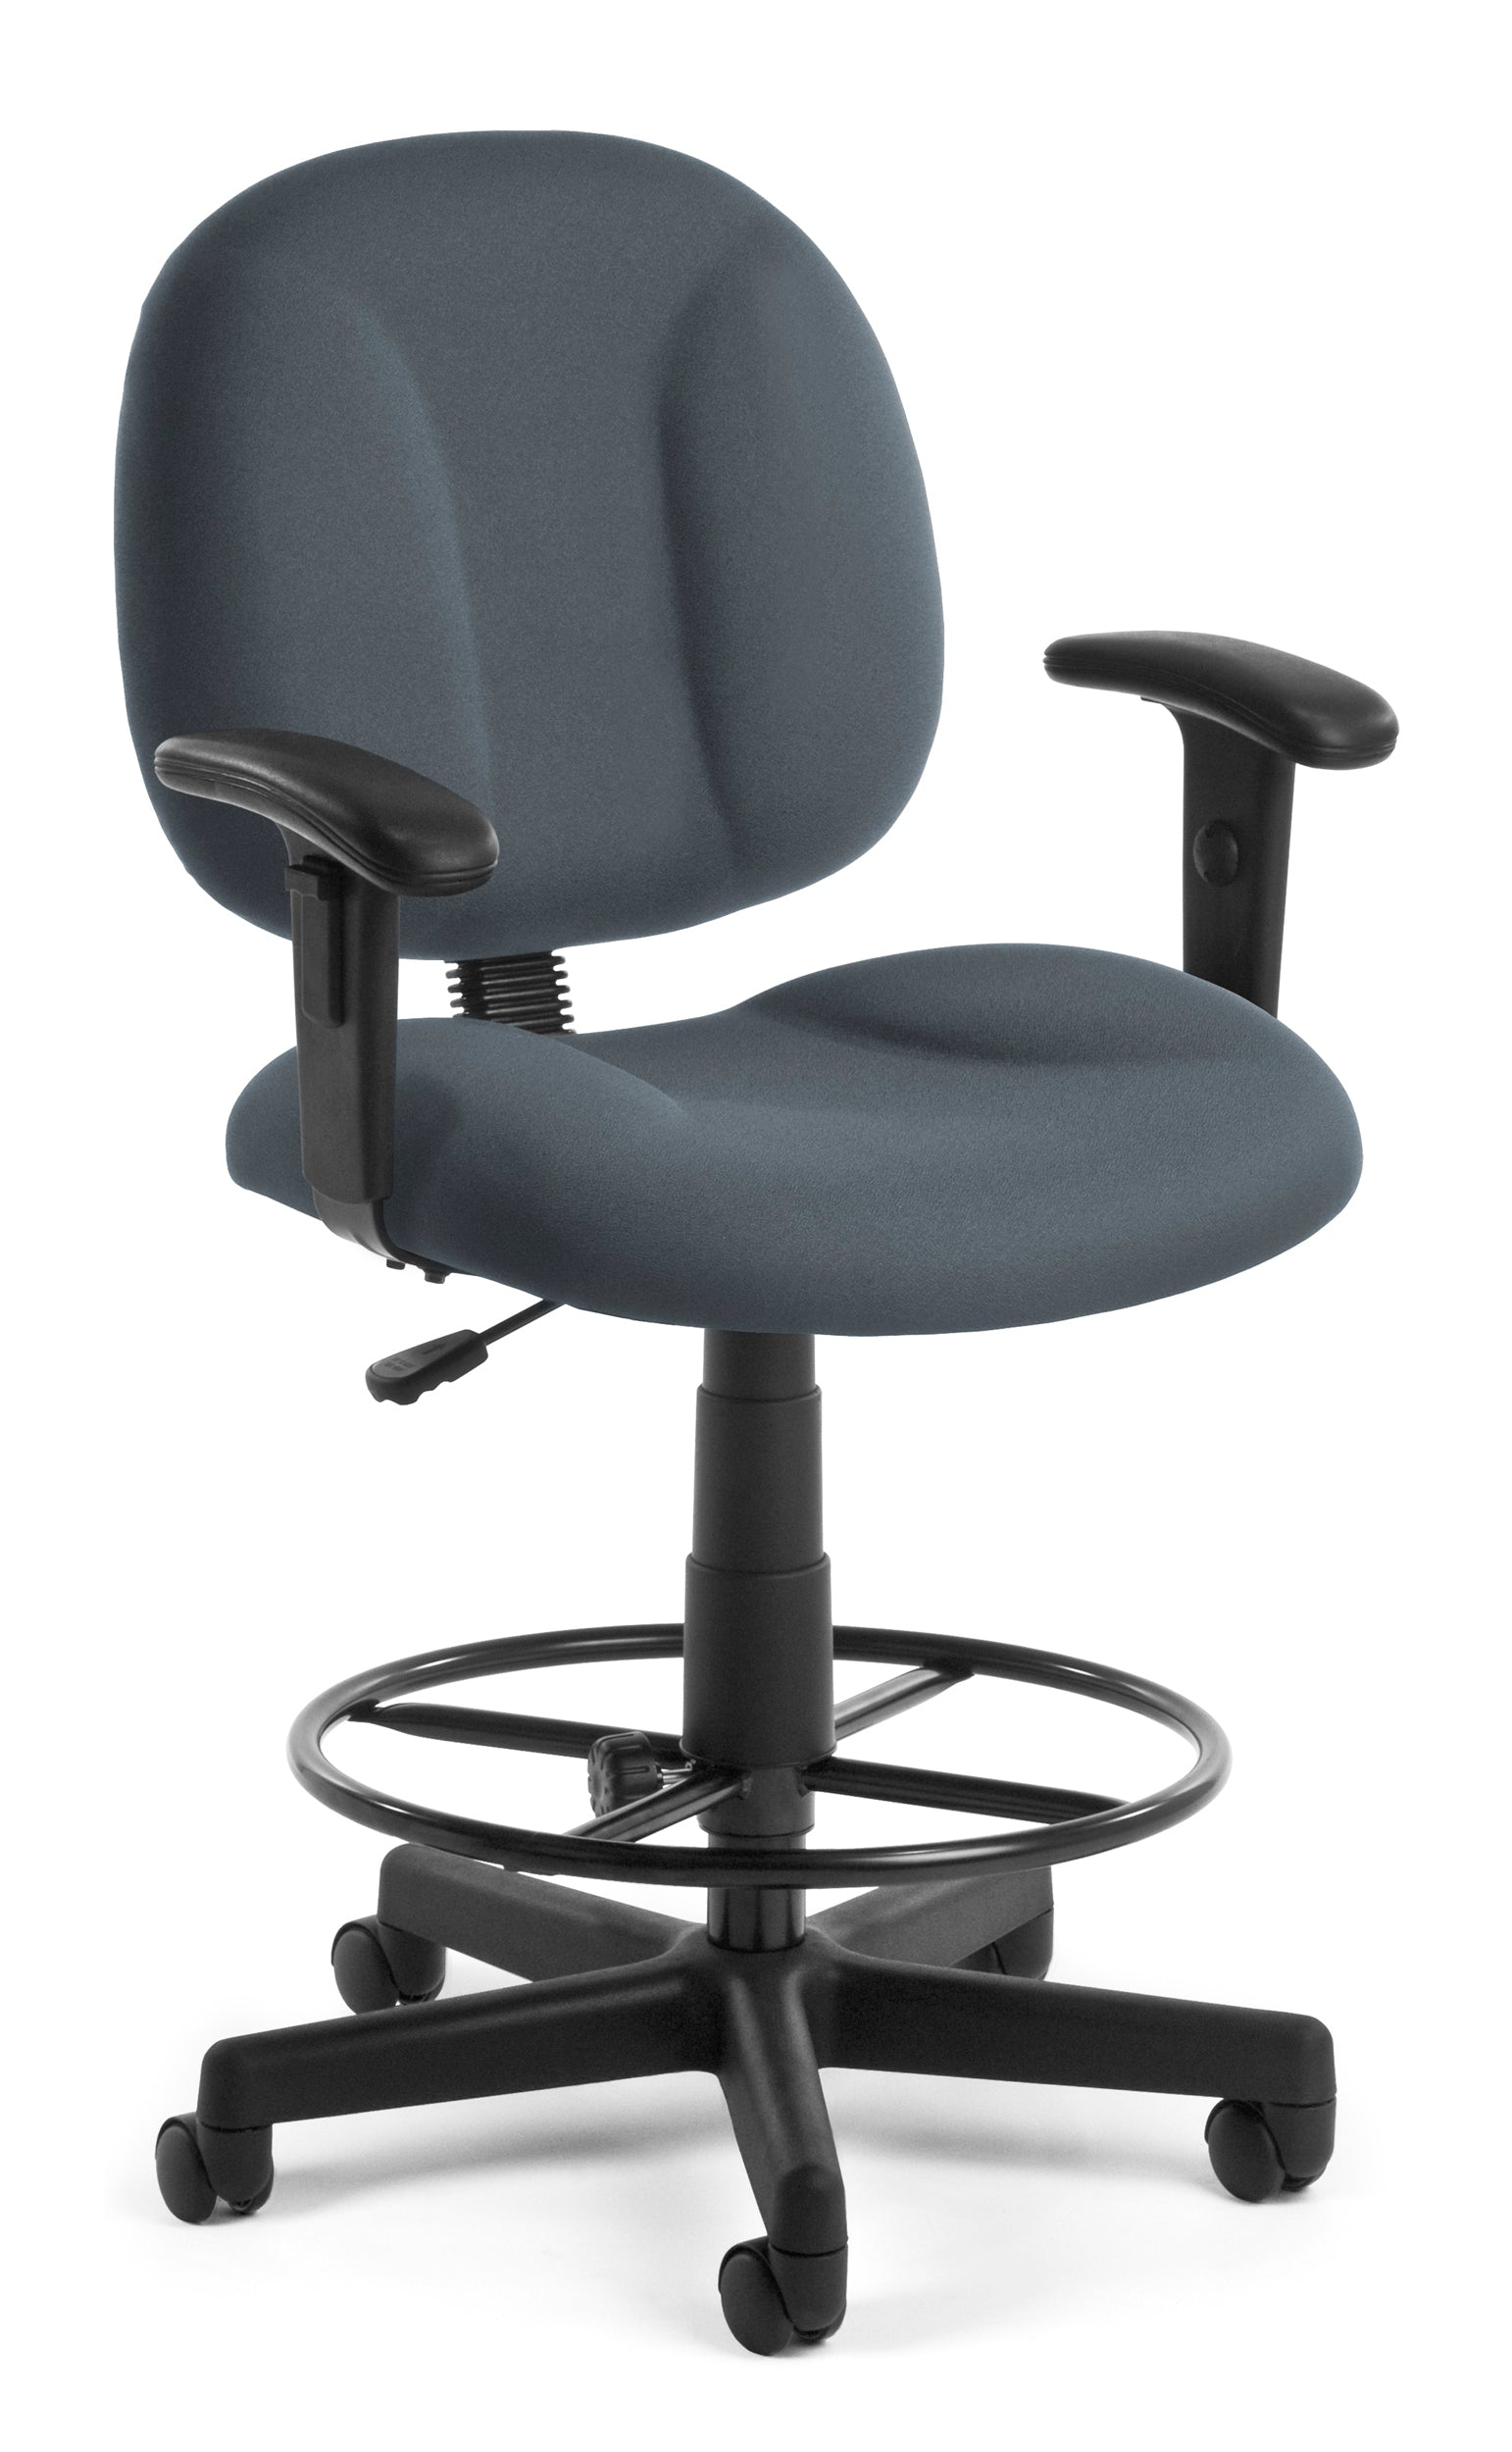 105-AA-DK Comfort Series Superchair Fabric Task Drafting Kit Arm Chair